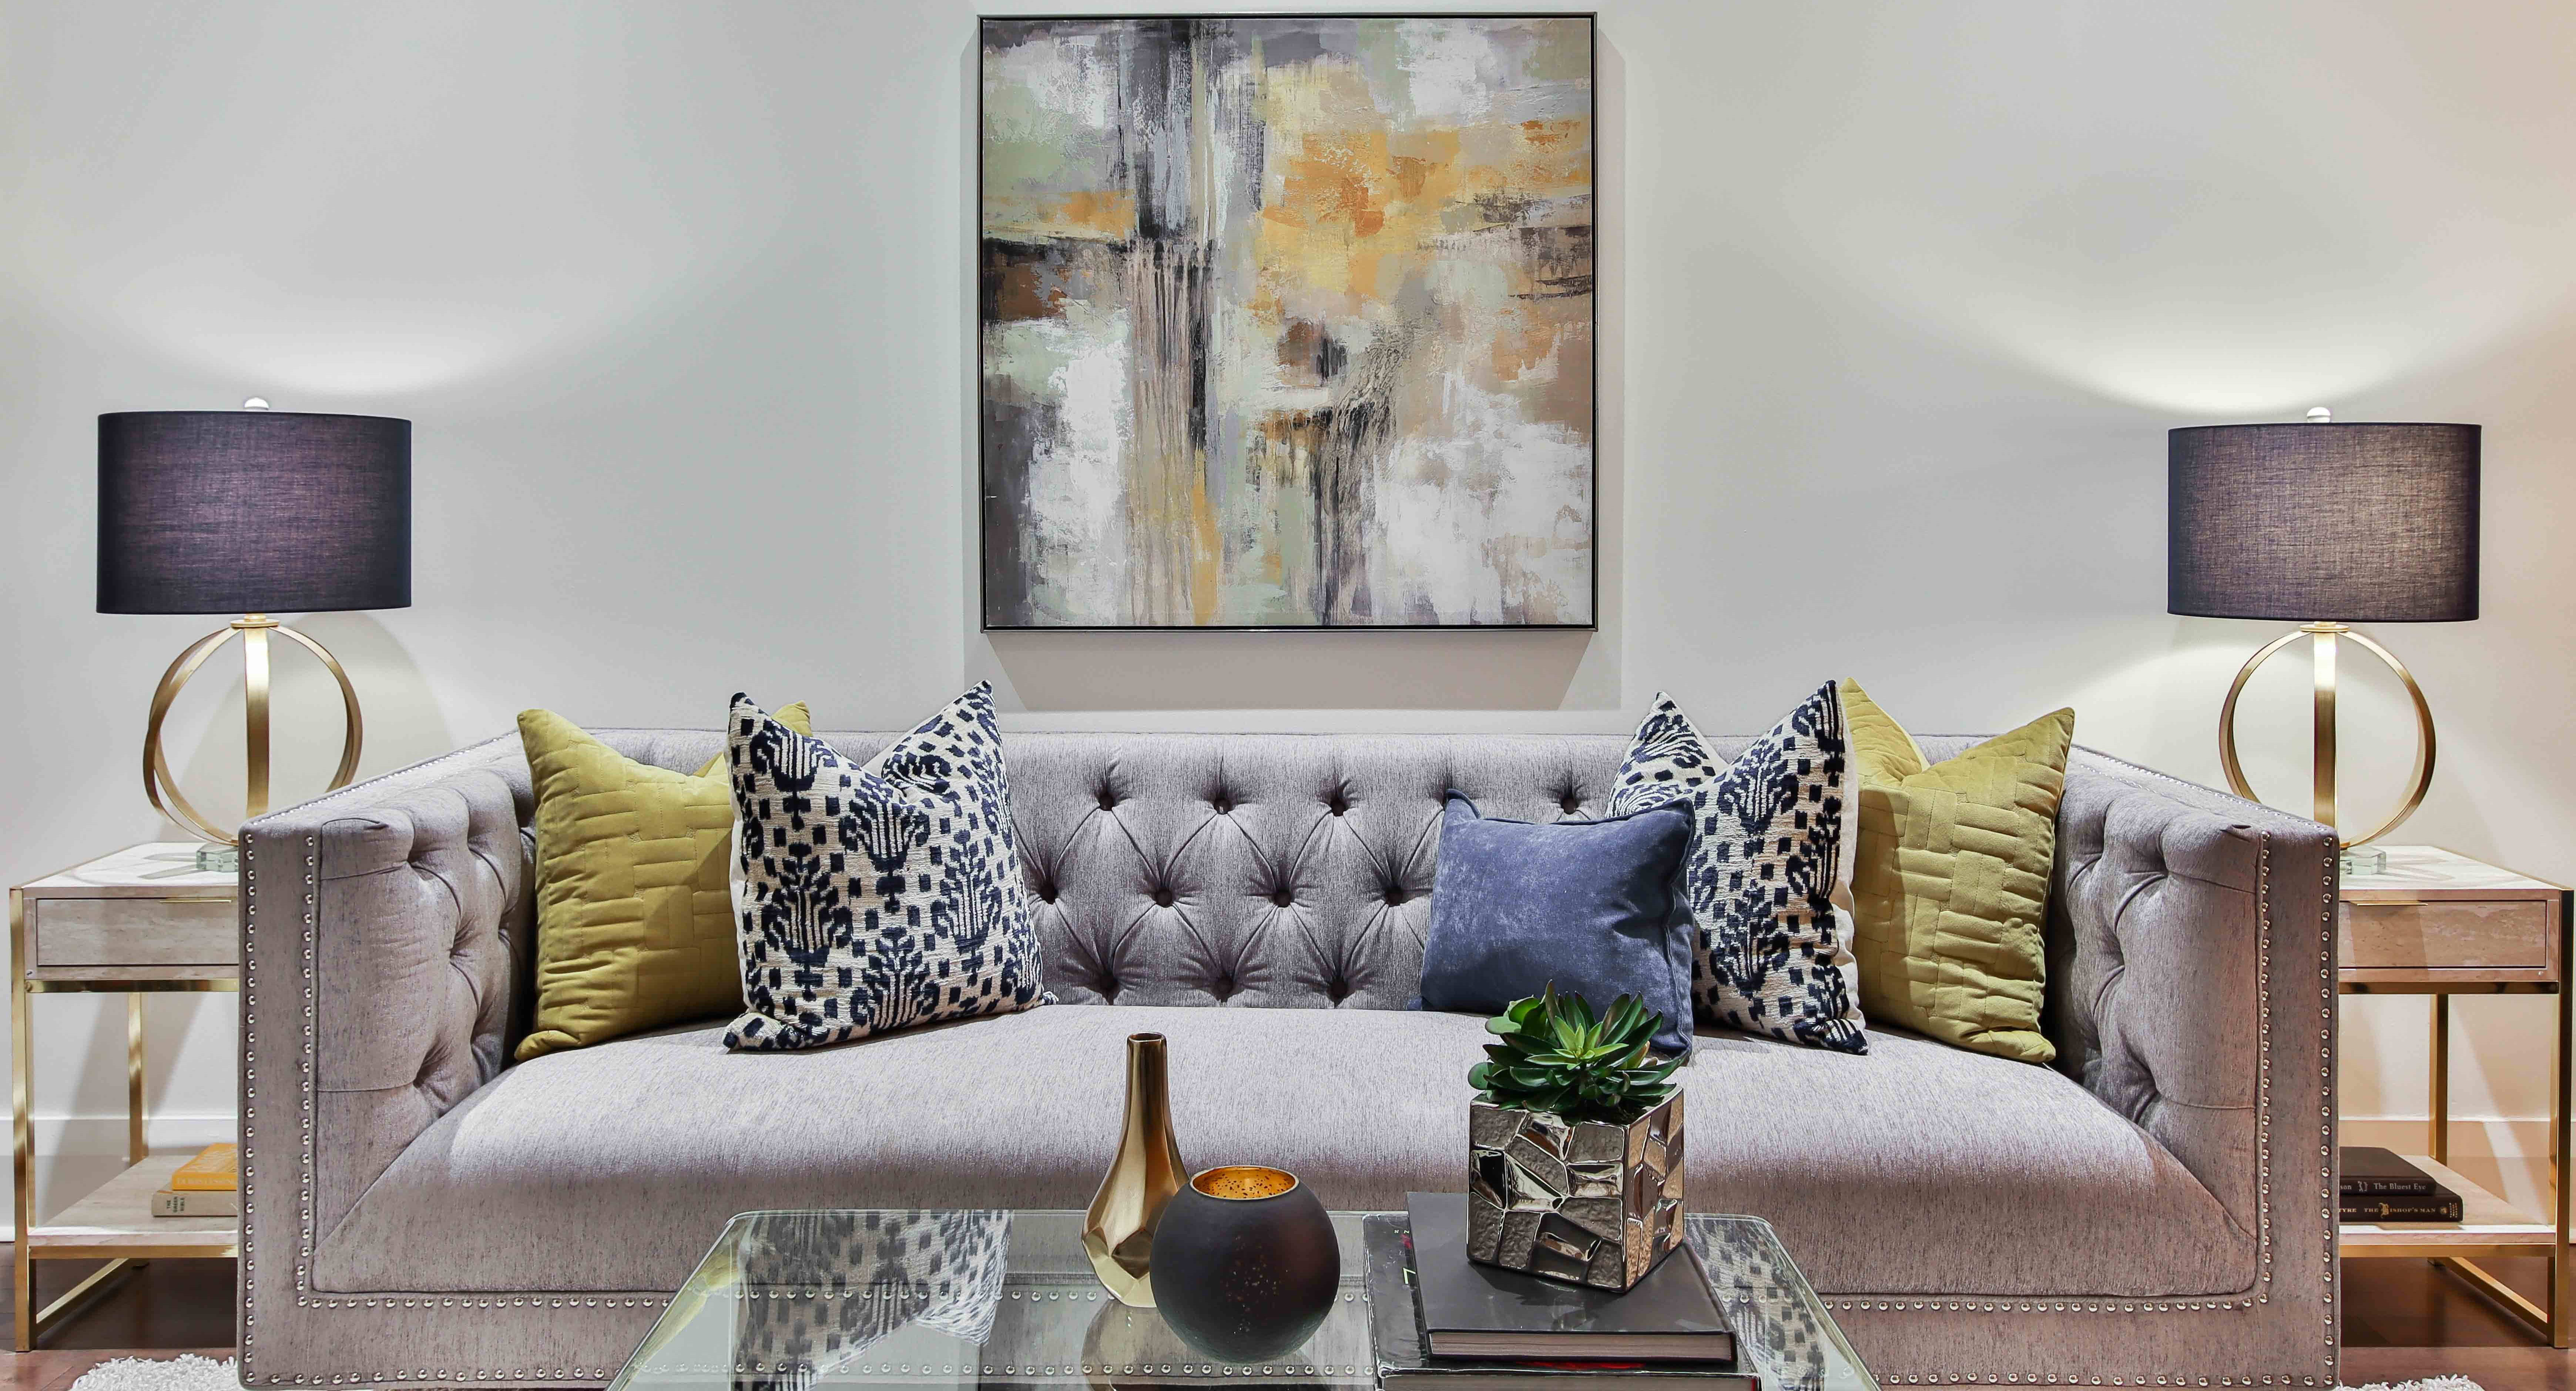 Plush couch with throw pillows, coffee table, trinkets, lamps, and large wall art above